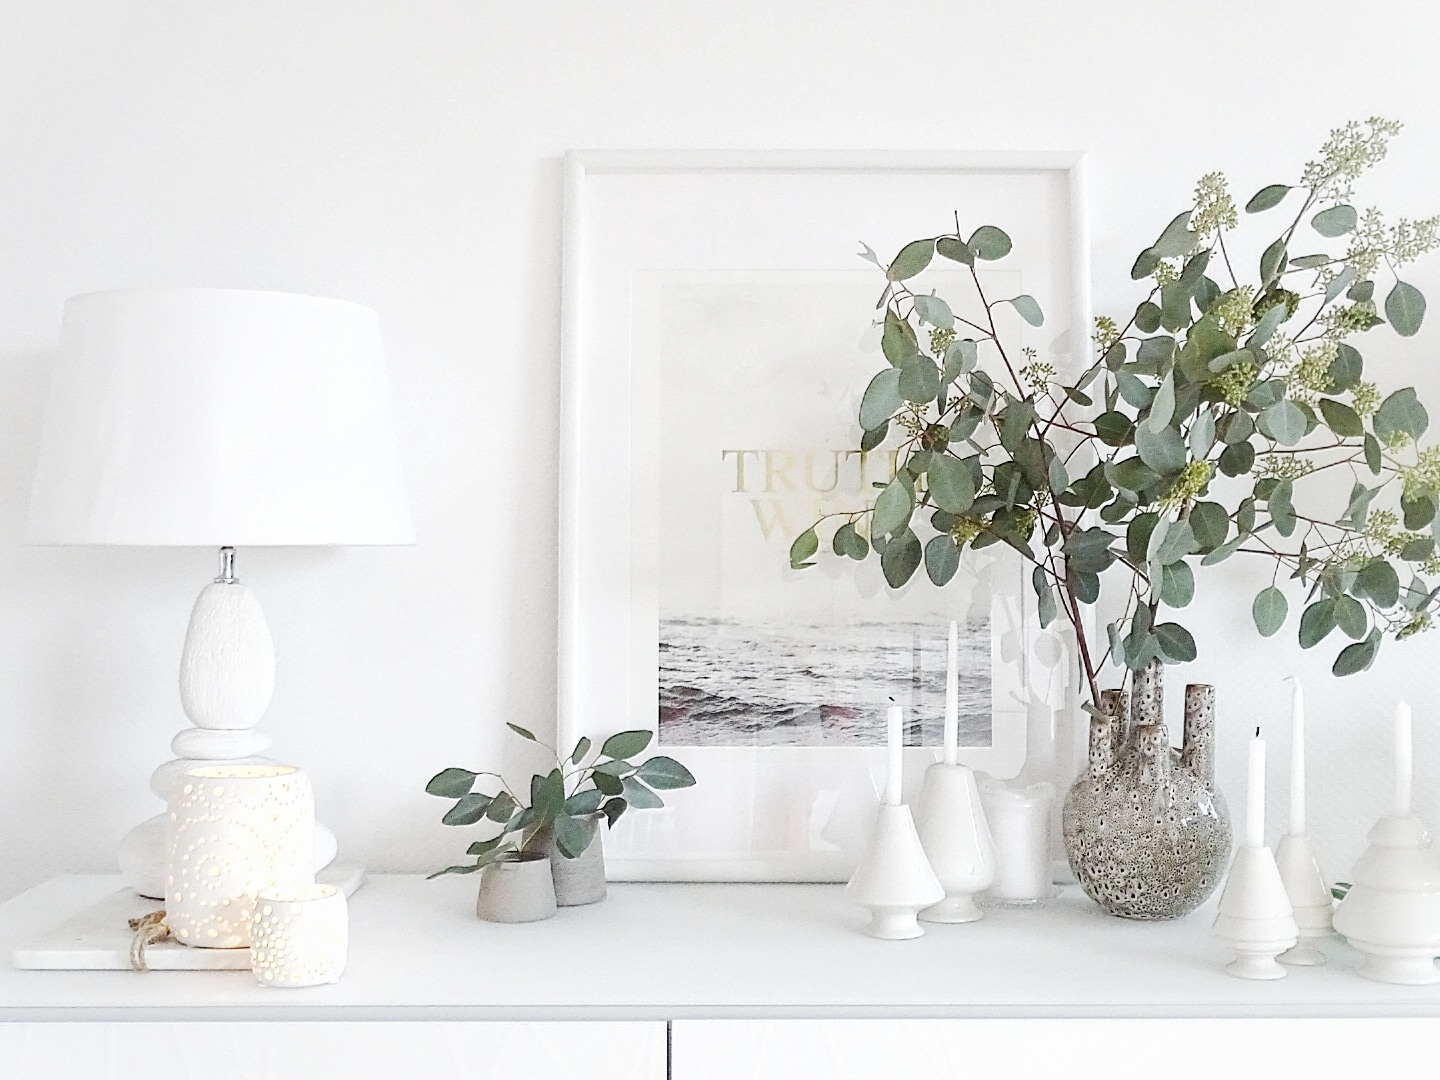 In this latest House of Instagram we discover Julia's German apartment brimming with scandinavian influences. White, minimal, the few vintage finds make an exciting contrast. Come and take the tour!